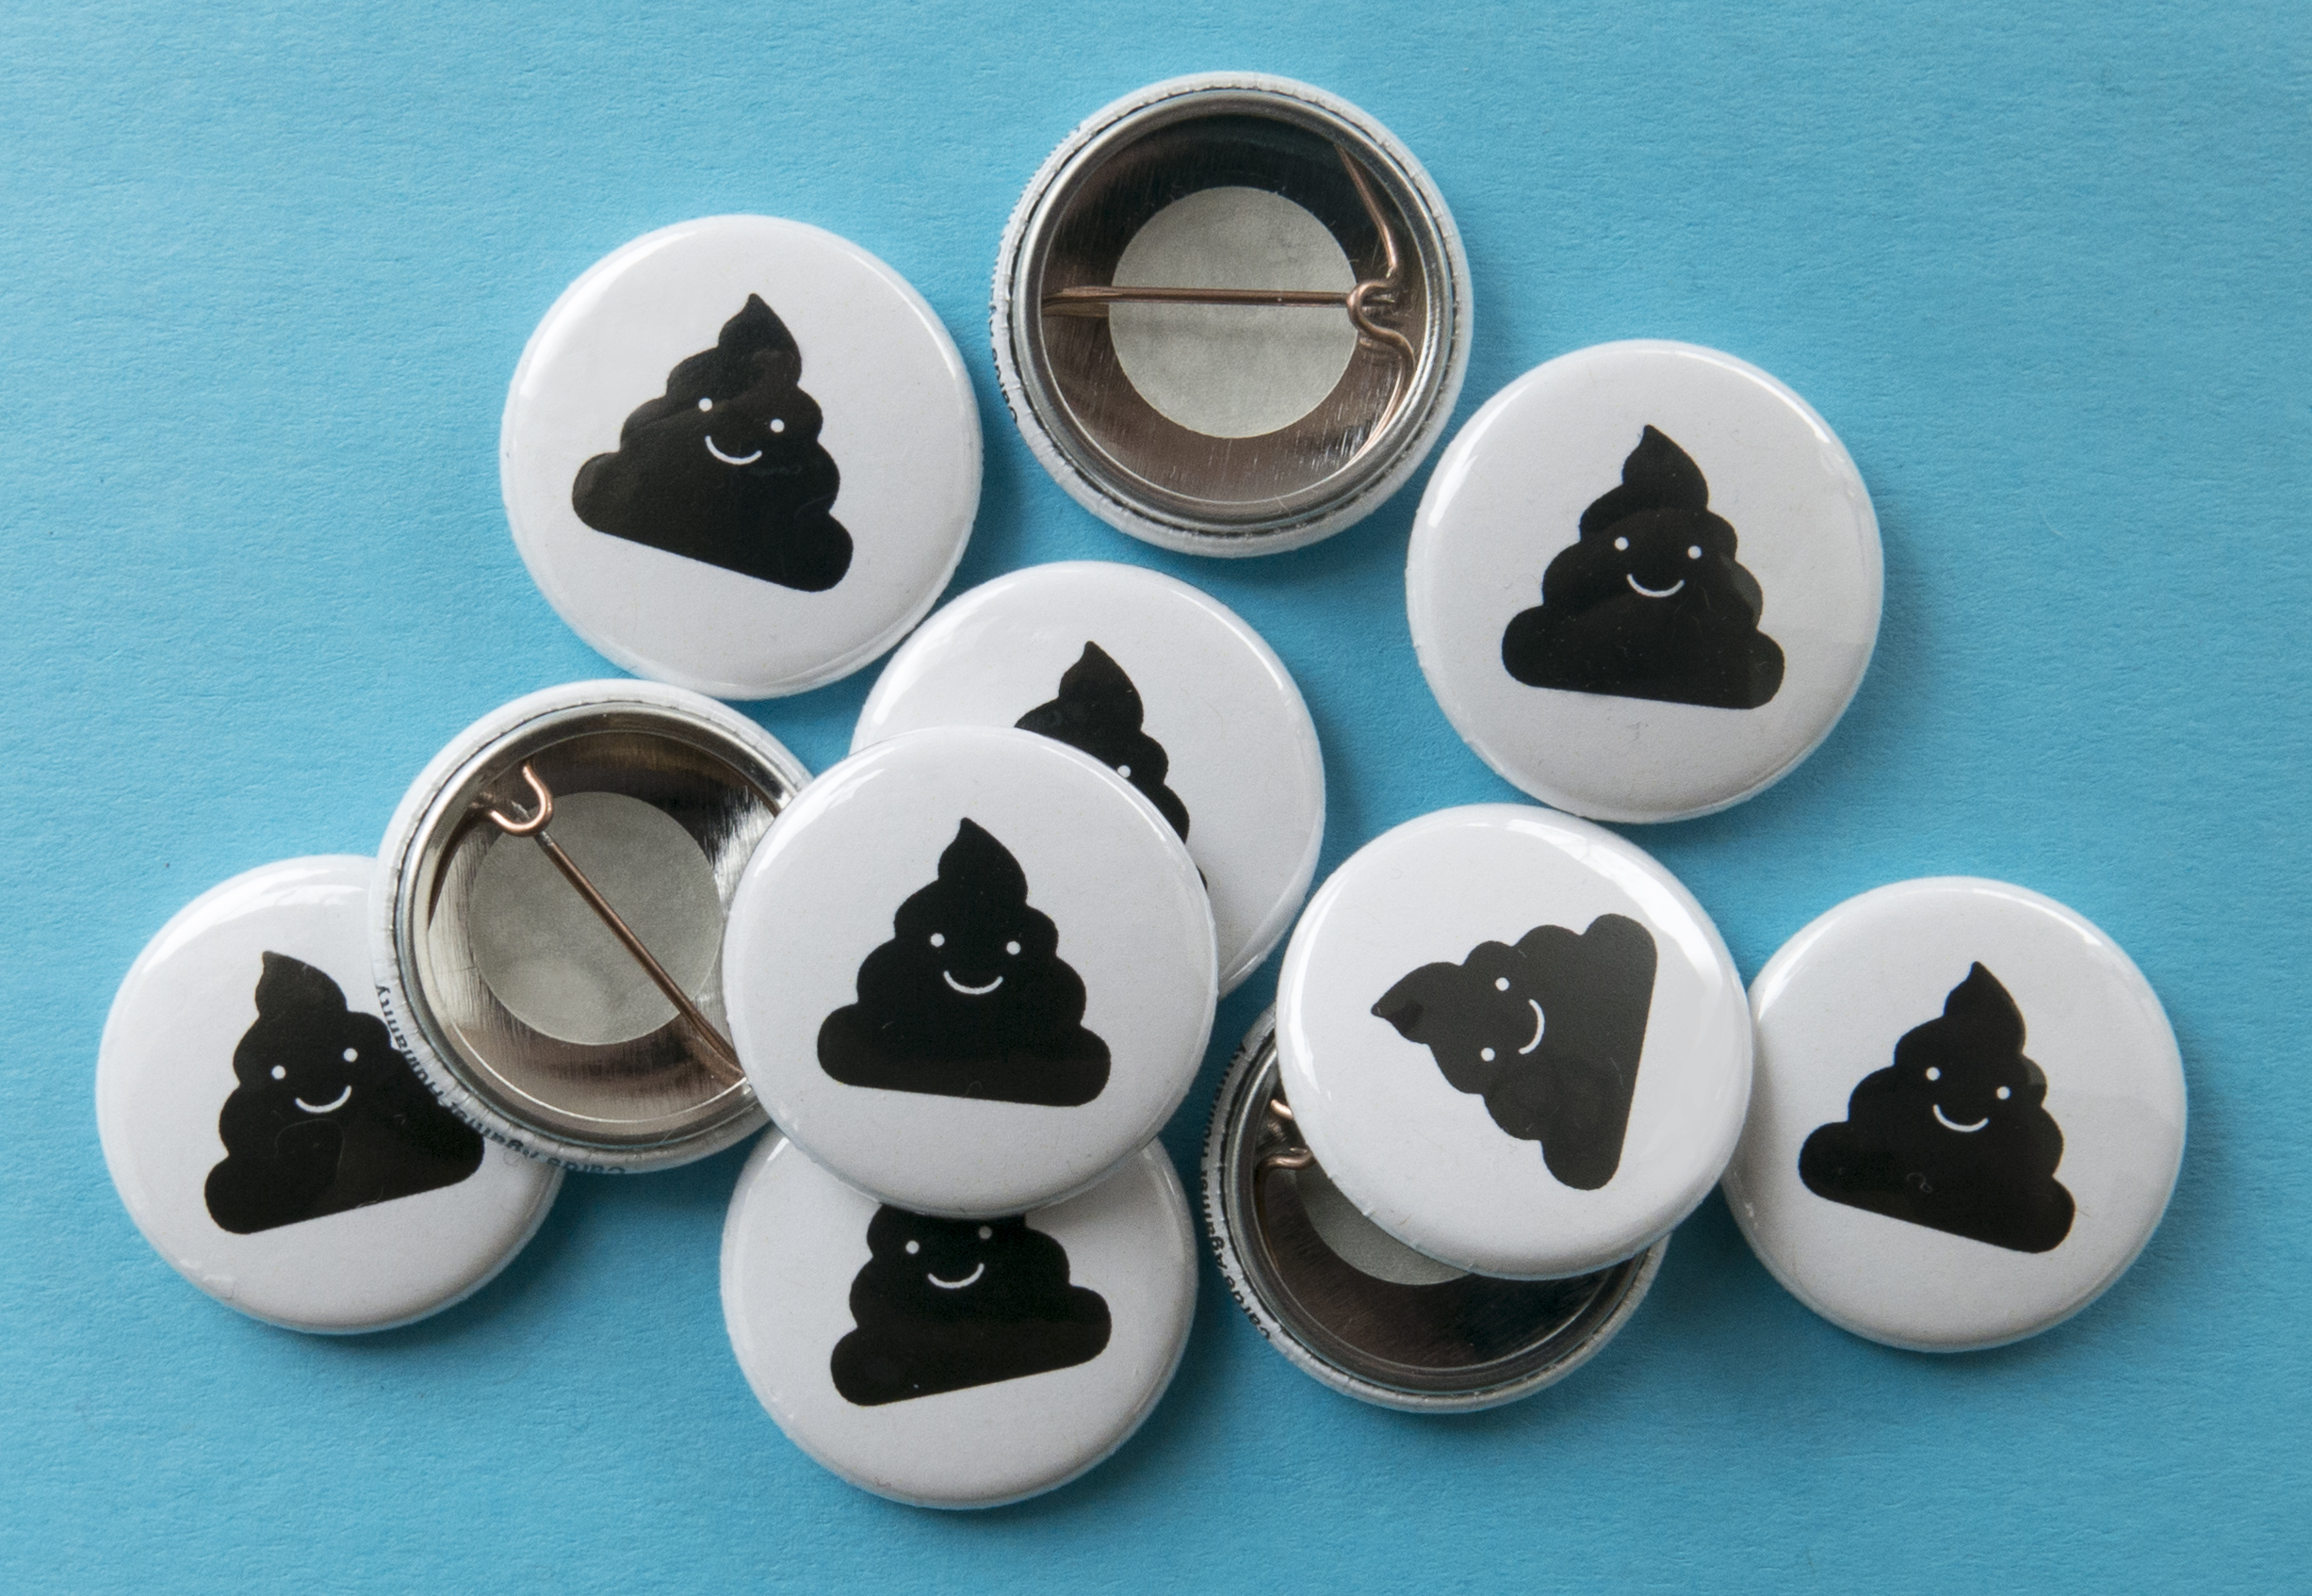 Cards Against Humanity Poop Buttons